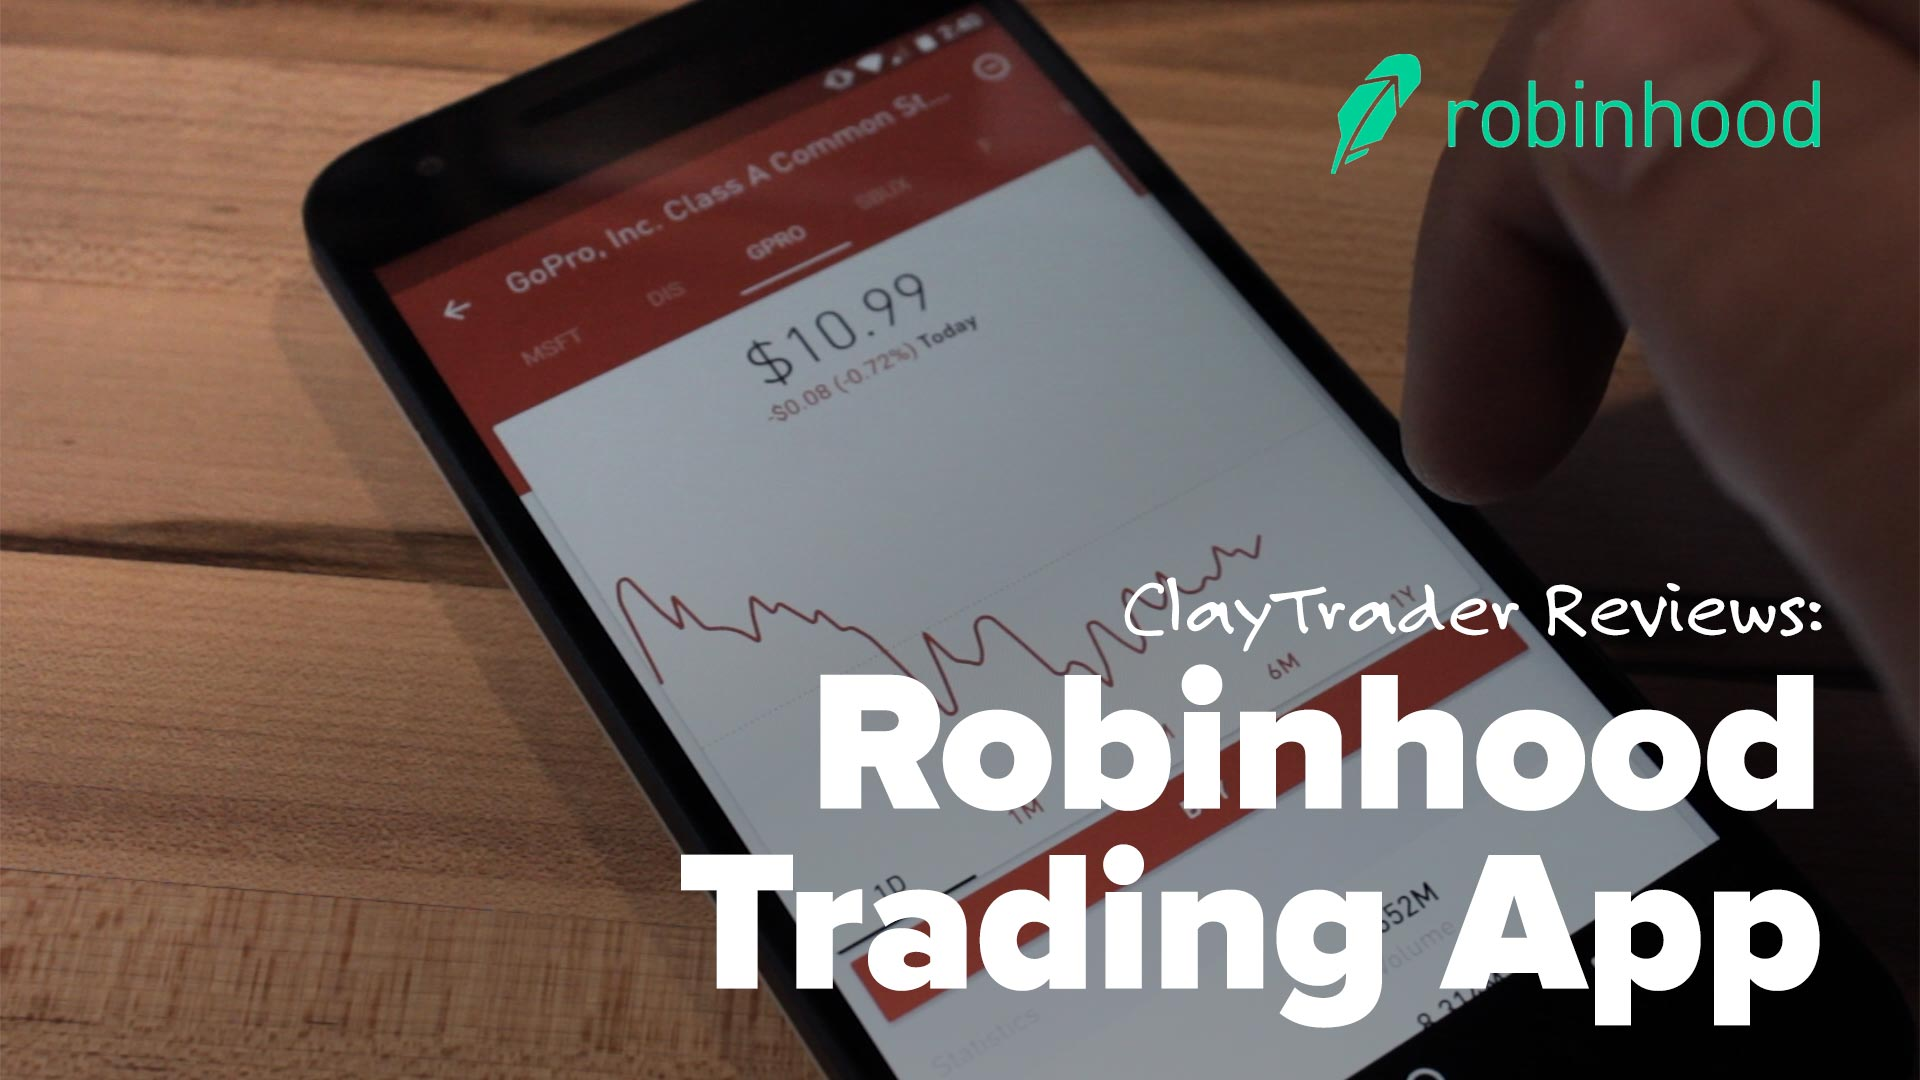 About Robinhood Company